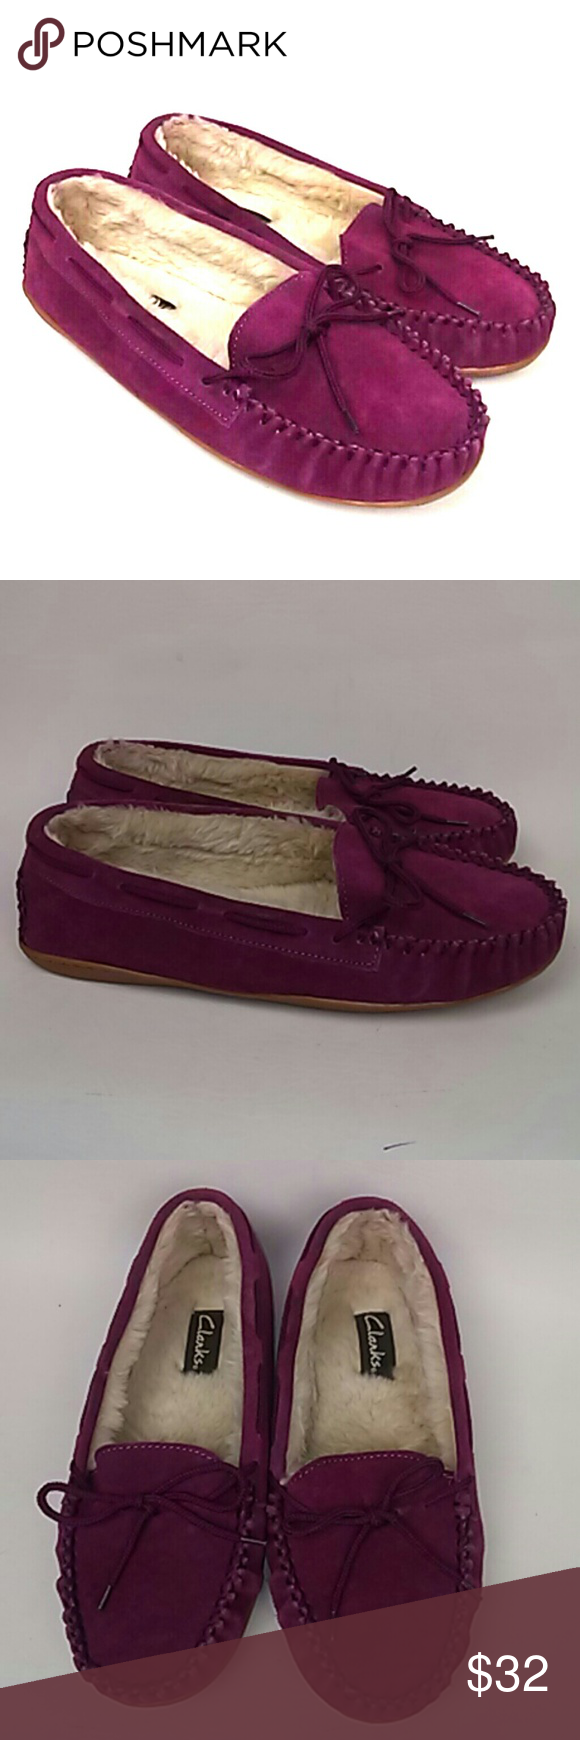 d424d1eeaa7 Shop Women s Clarks Pink size 10 Slippers at a discounted price at Poshmark.  Description  Faux Fur Lined Women s Shoes.